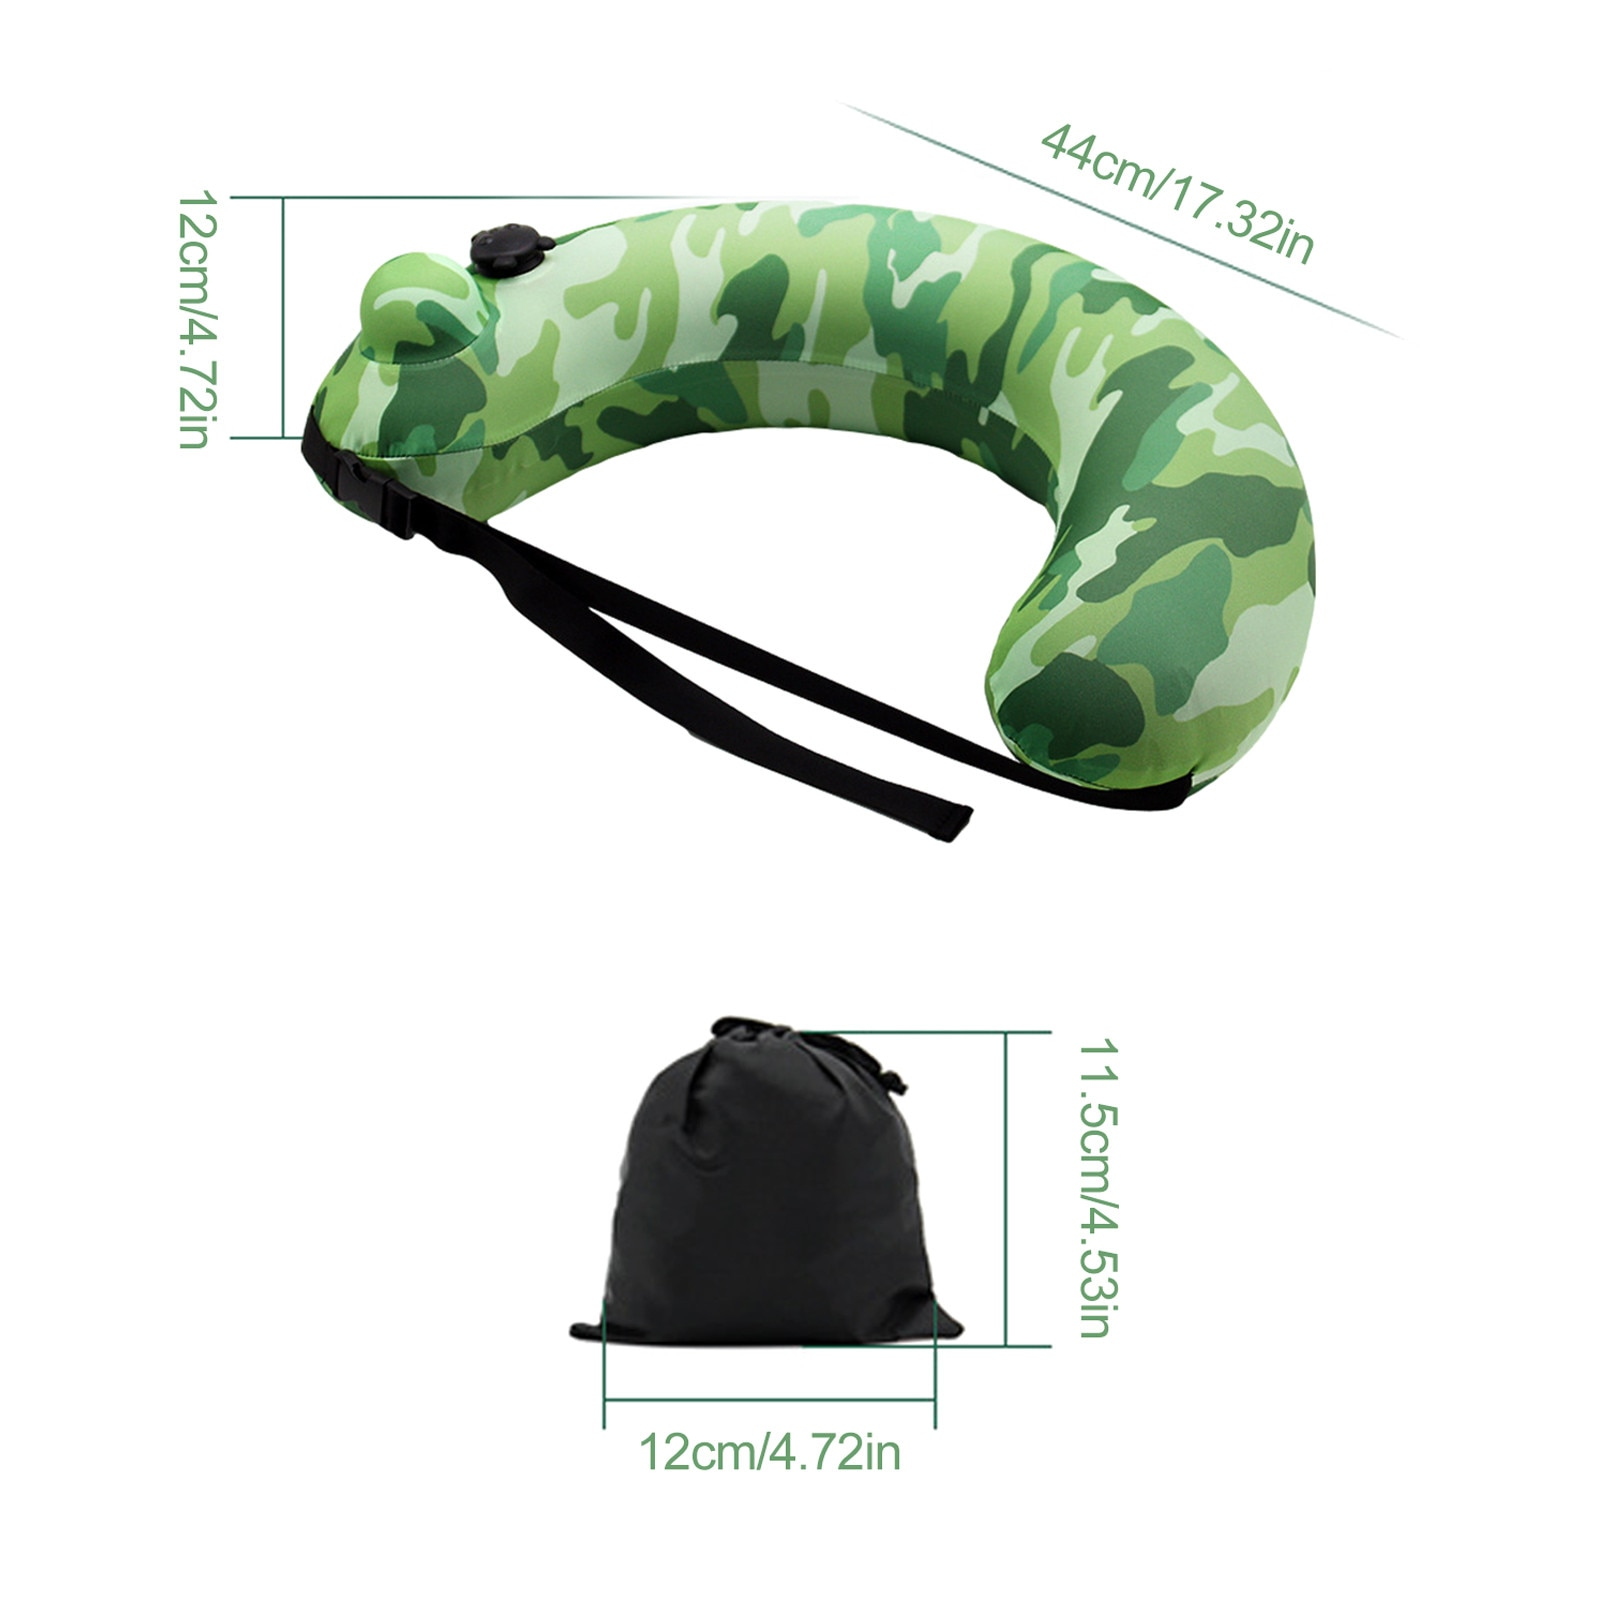 Portable Swim Ring Semi-circular Waterproof Camouflage Thickened Inflatable Pillow For Kids Adults Swimming Beginner  - buy with discount